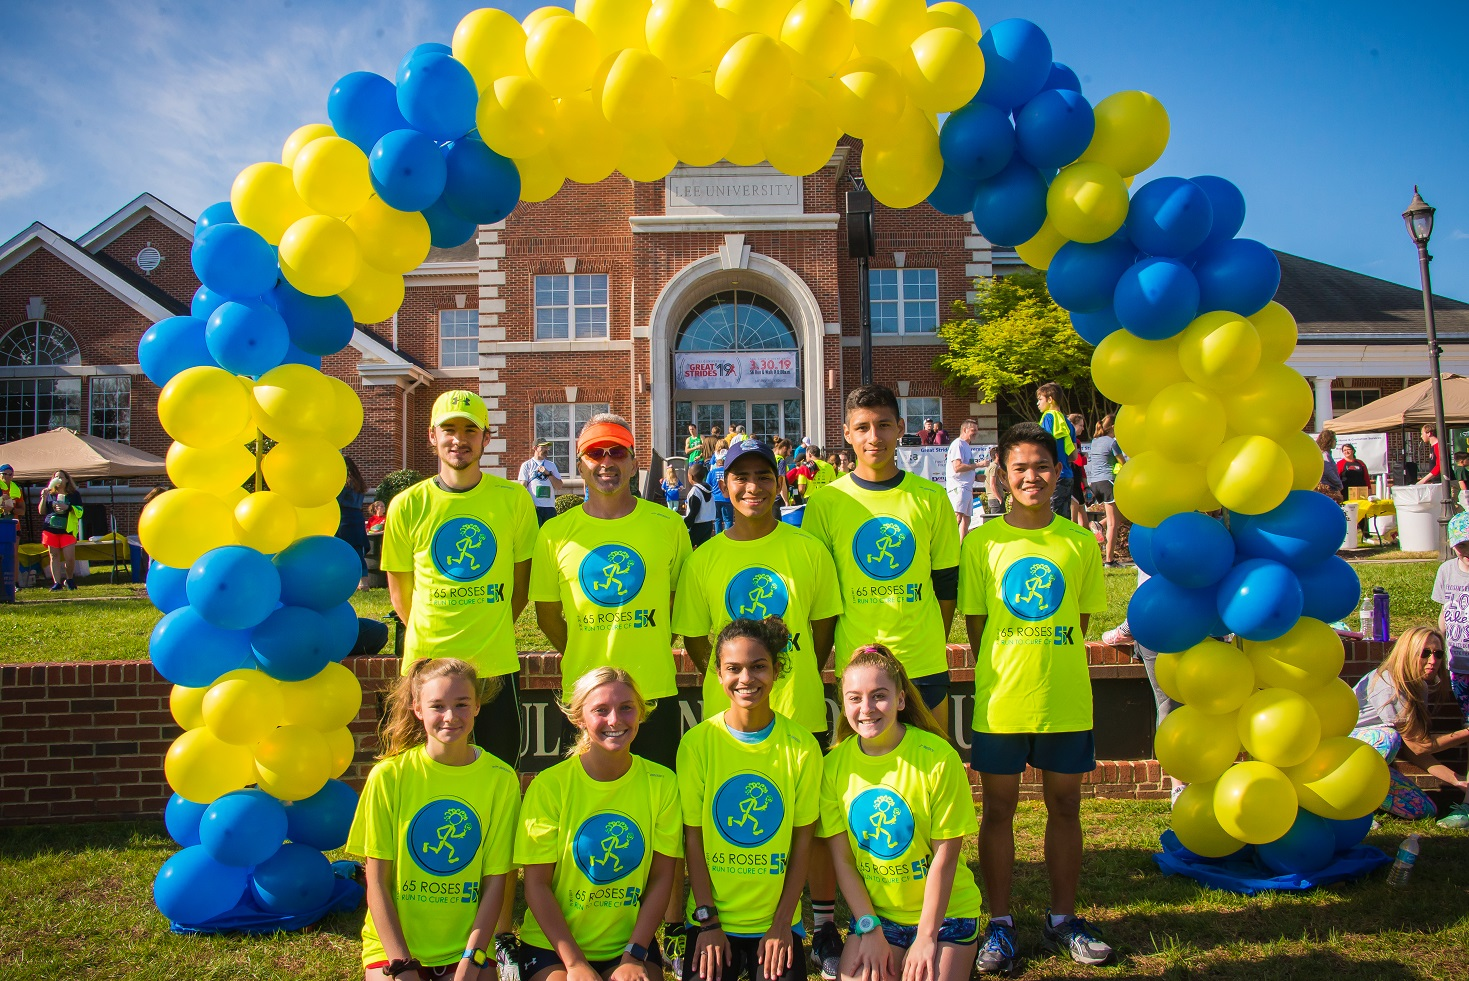 XC Completes 5K For Charity Saturday